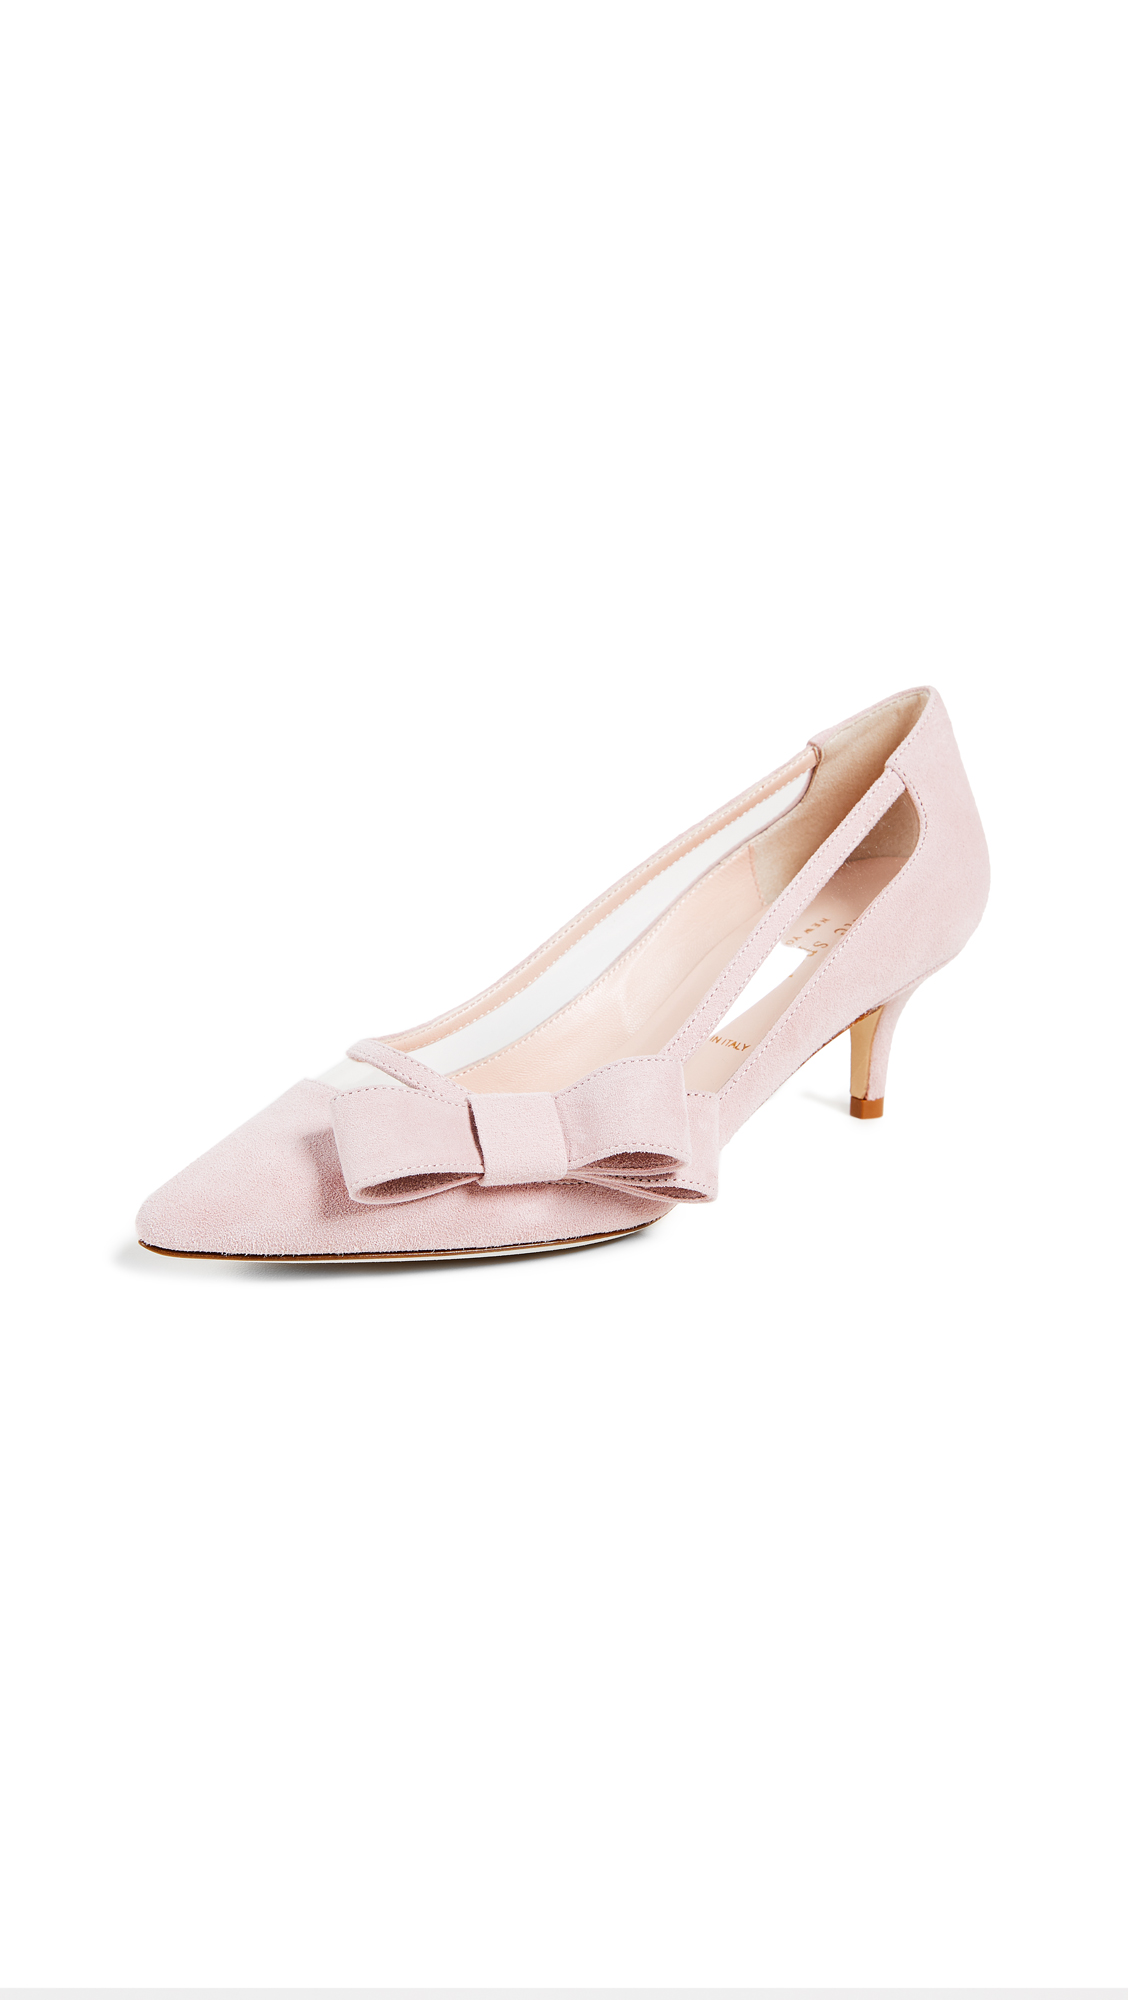 Kate Spade New York Mackensie Point Toe Pumps - Sweet Pink